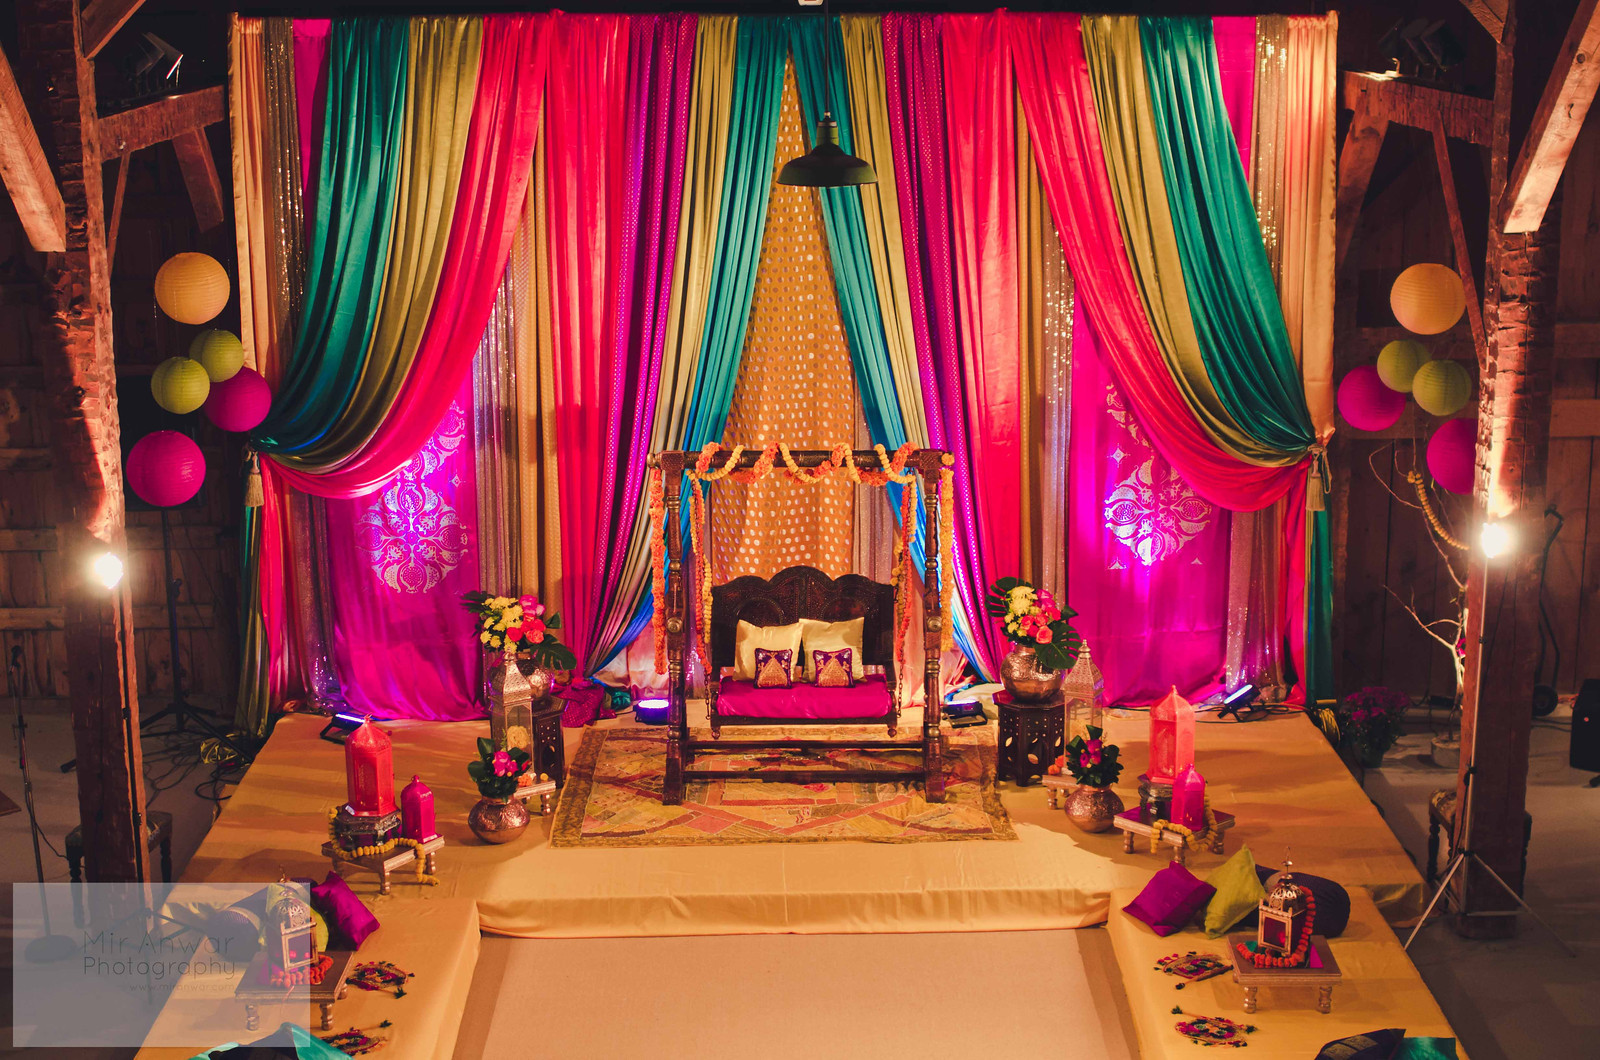 essay on pakistani wedding party Short essay on an indian wedding article shared by an indian wedding is a grand occasion, very colorful and very lavish with a lot of pomp and show essay on.